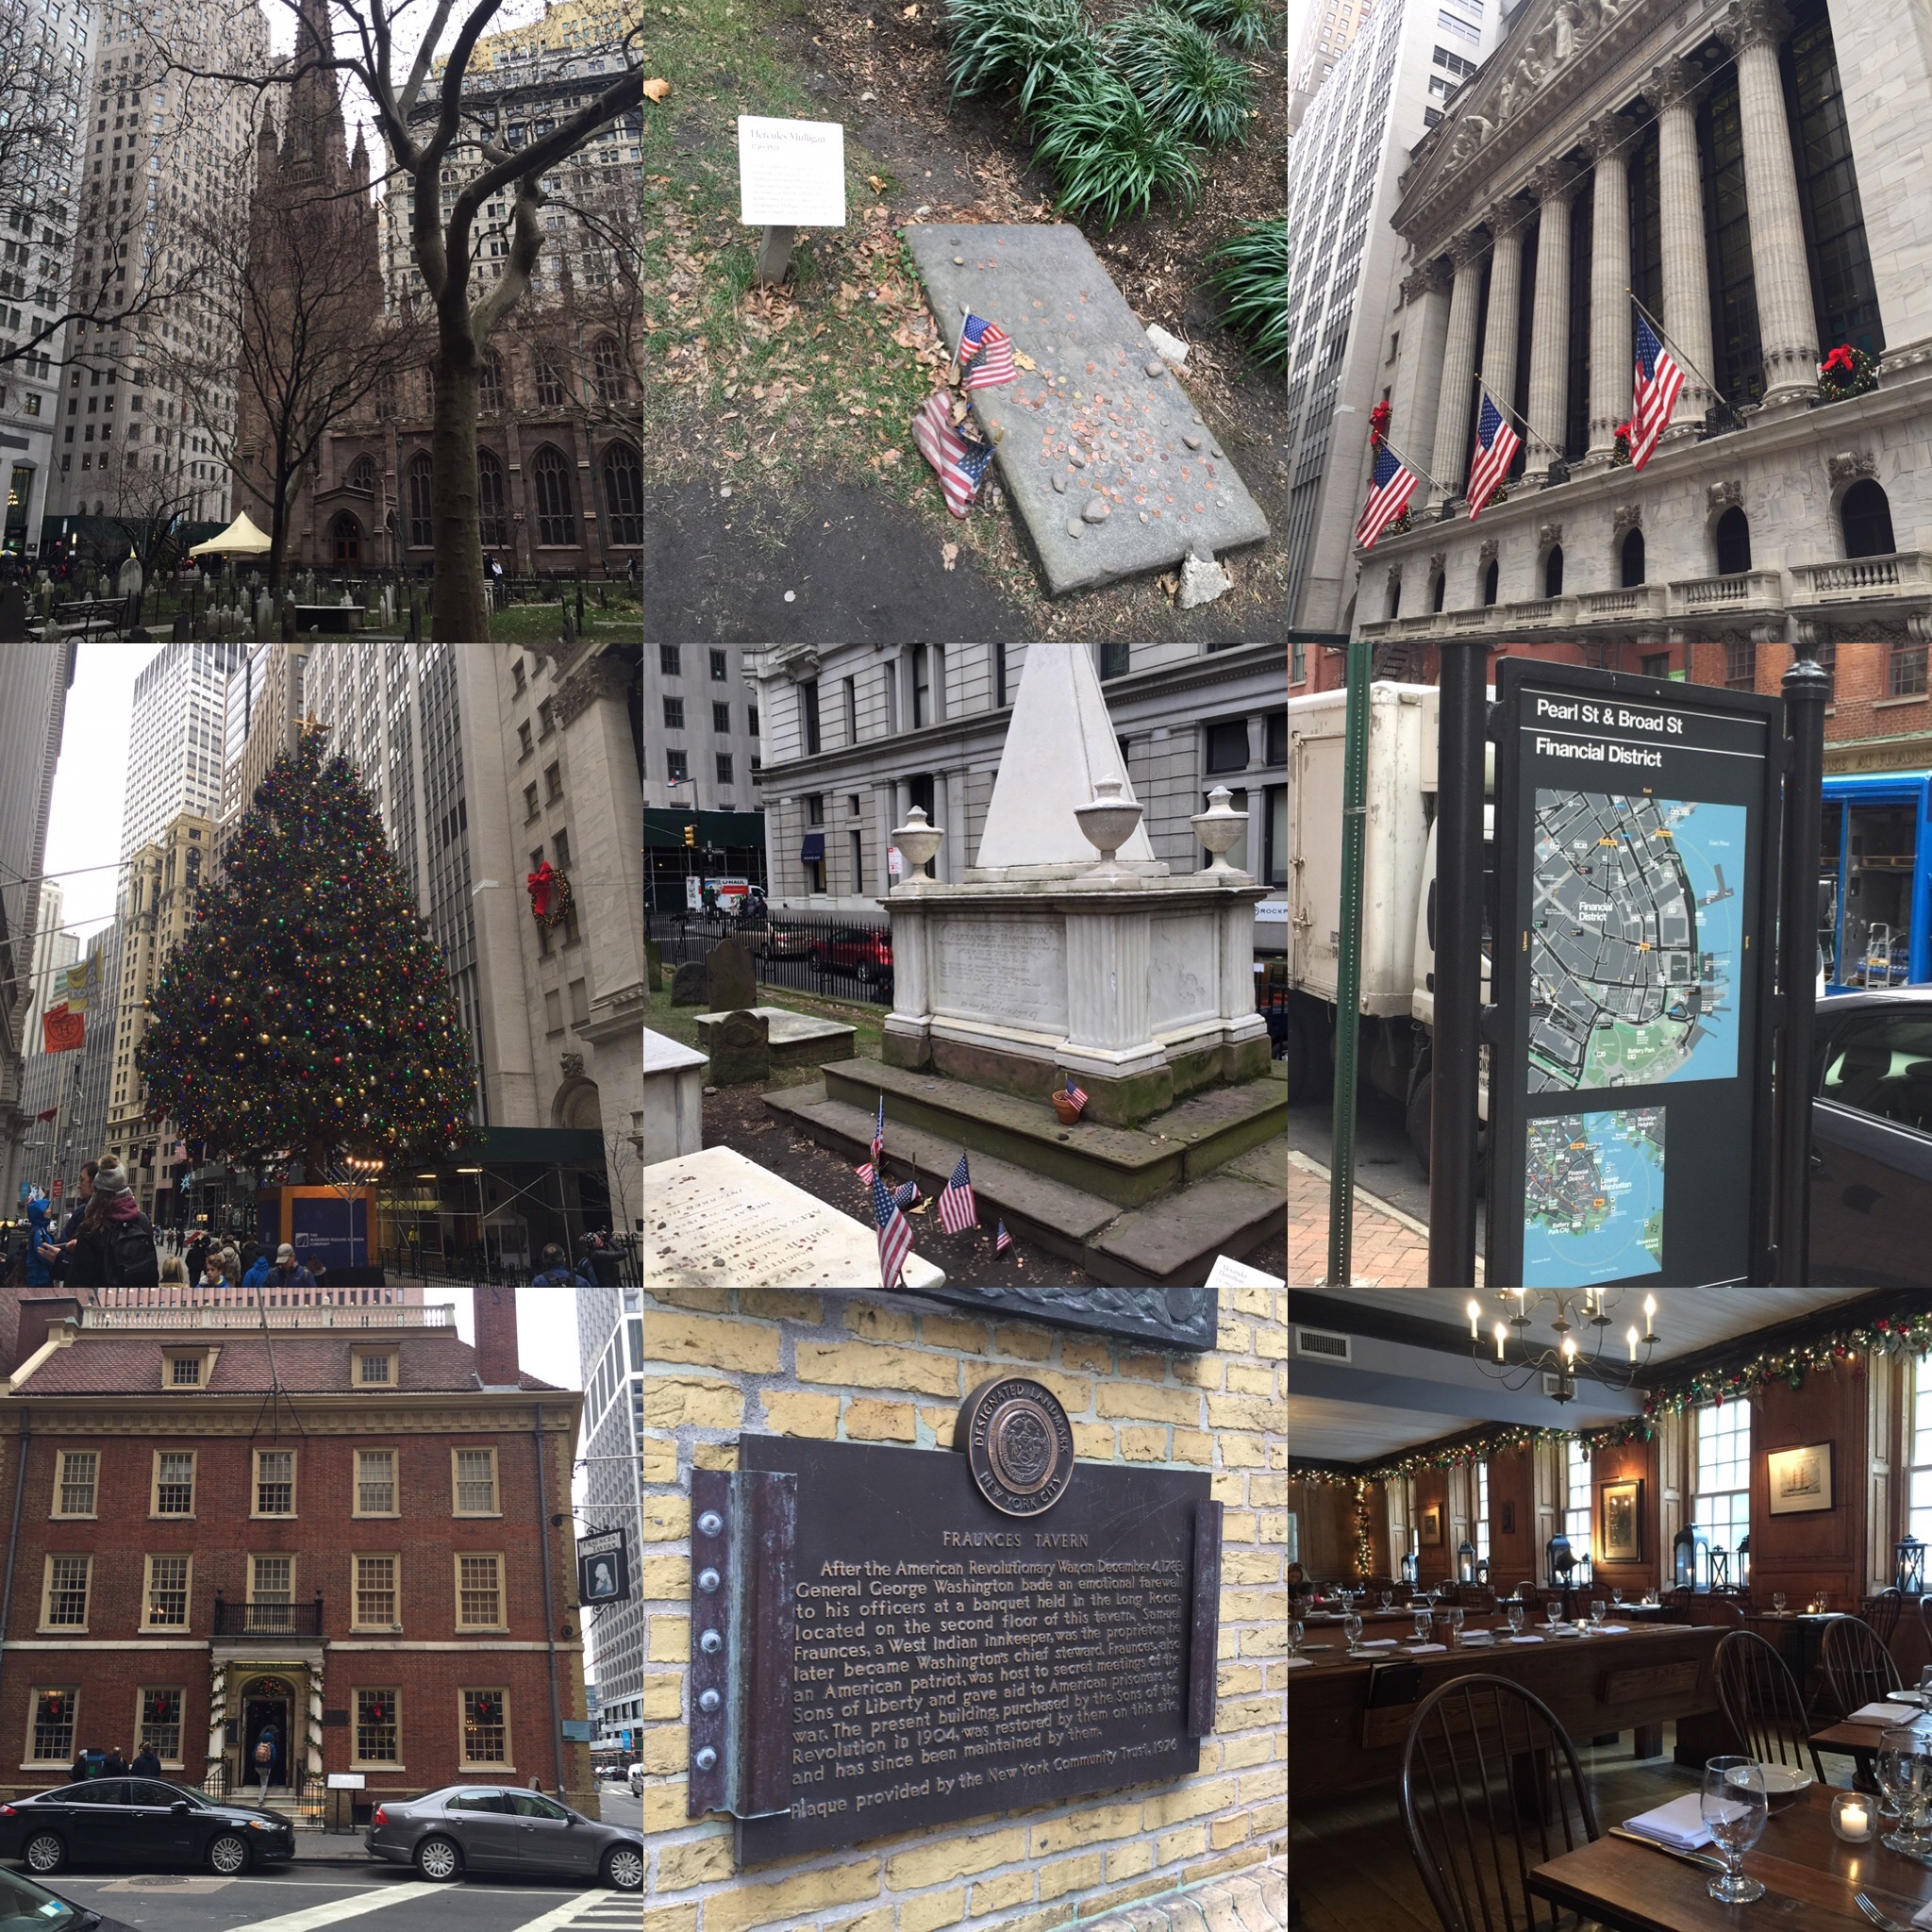 Had so much fun exploring Hamilton's lower Manhattan! The hot cider at Fraunce's Tavern was AMAZING on a freezing winter's day!